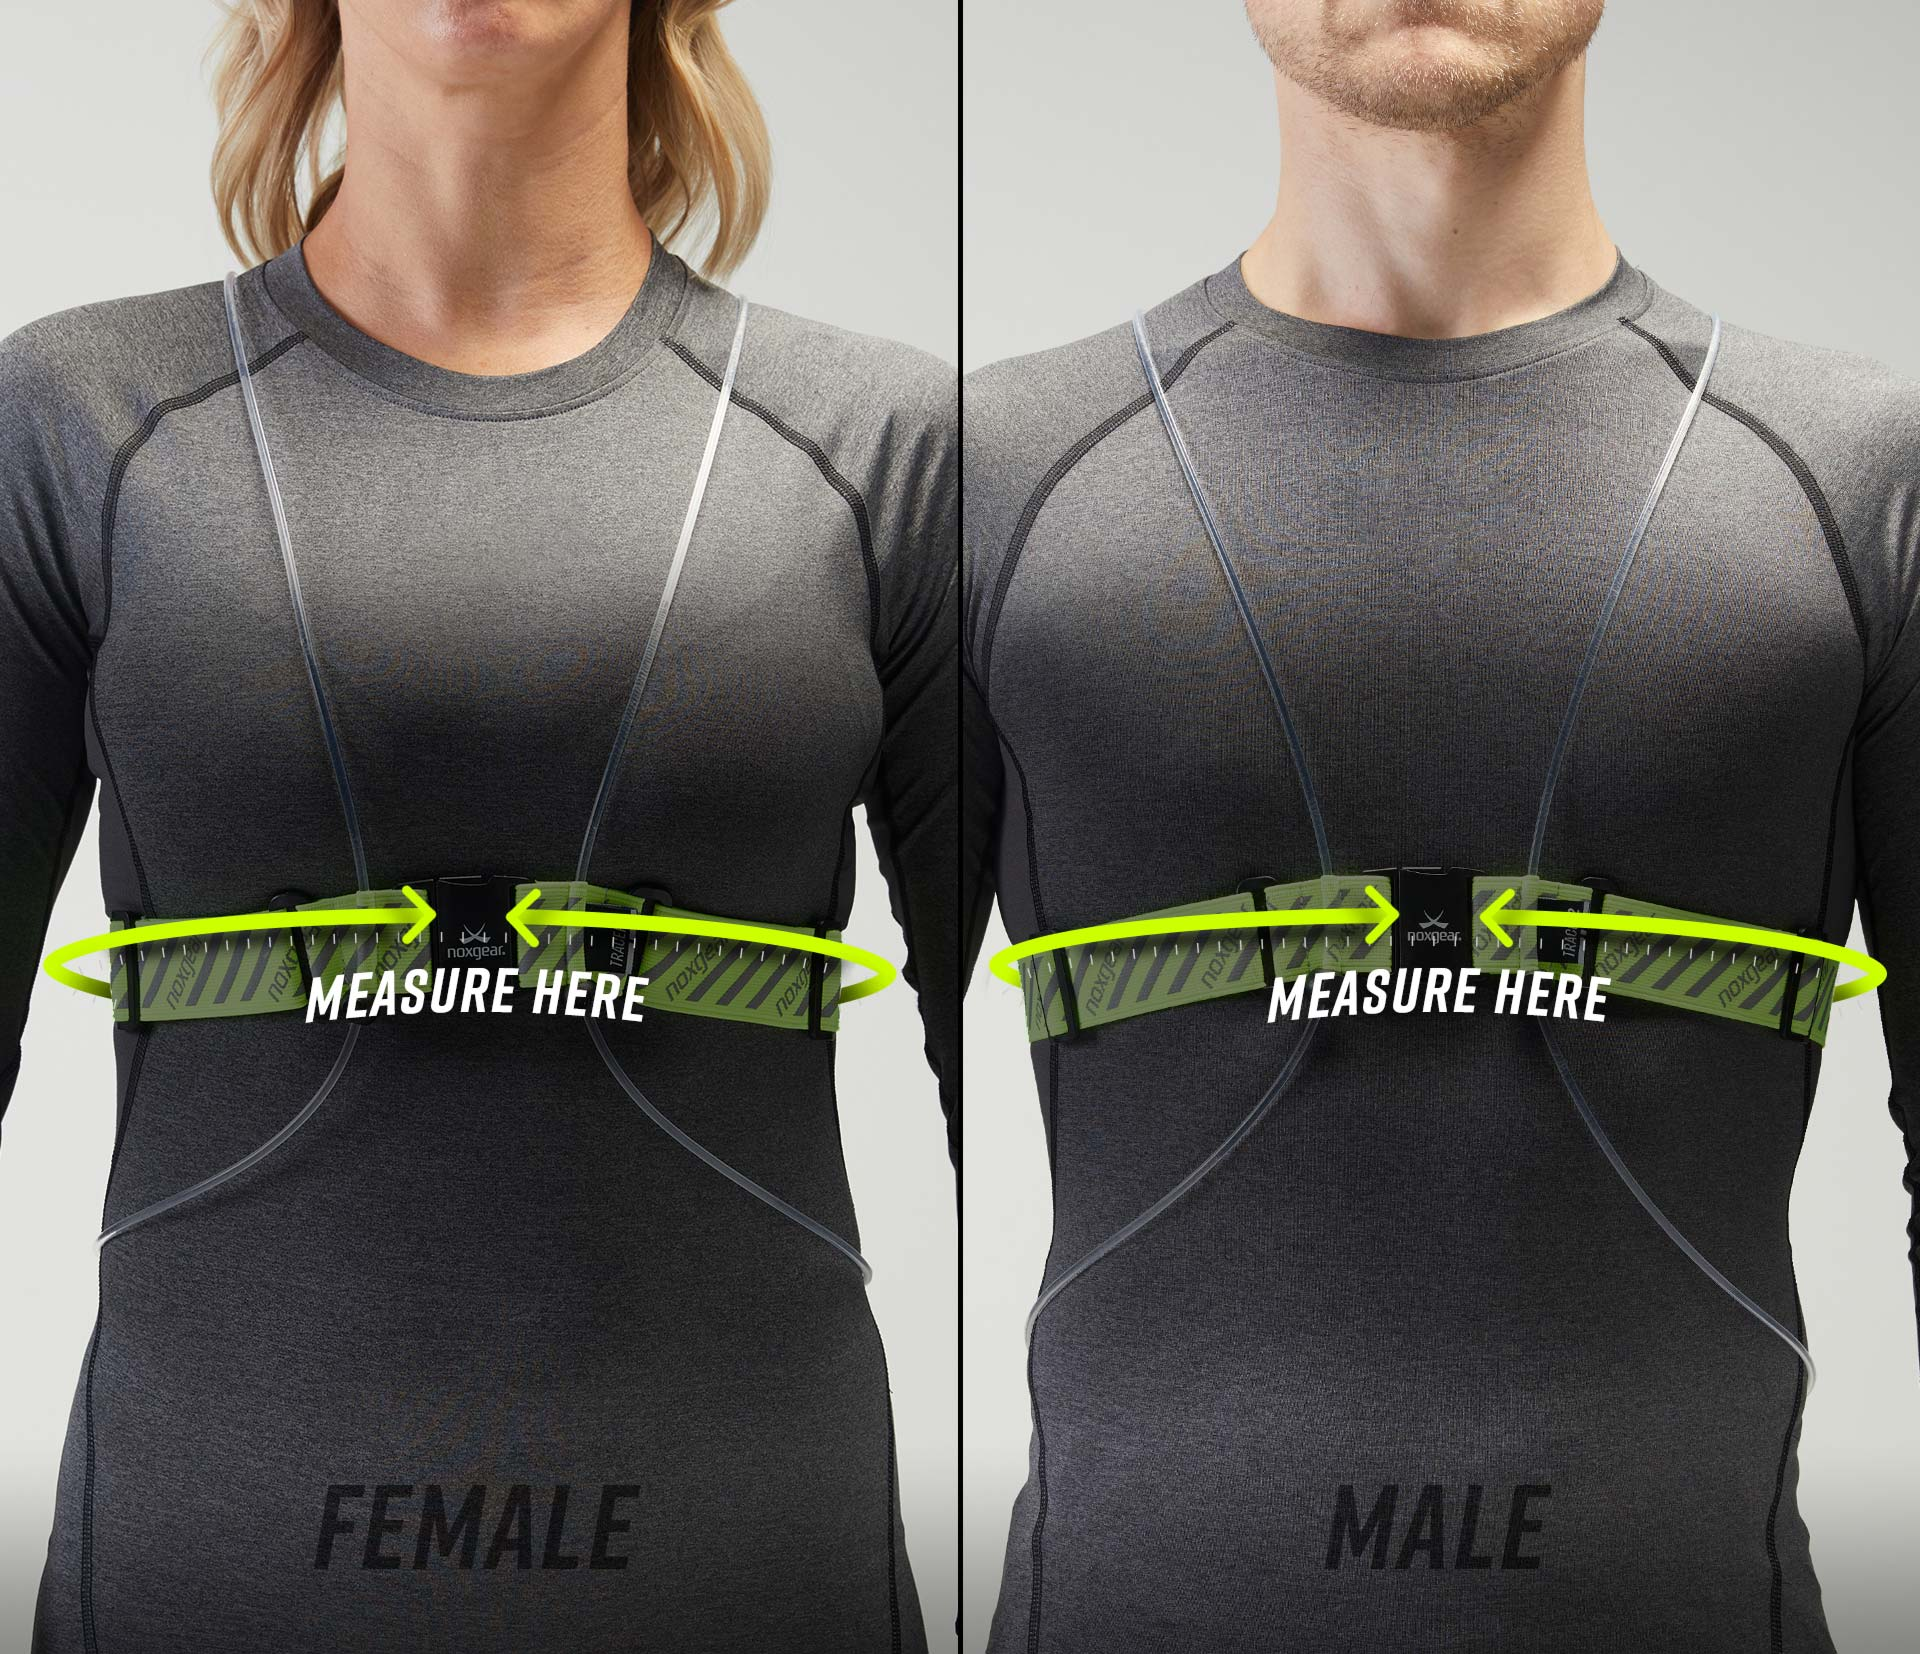 Photo showing the fit of a Tracer2 on the torso of a man and a woman.